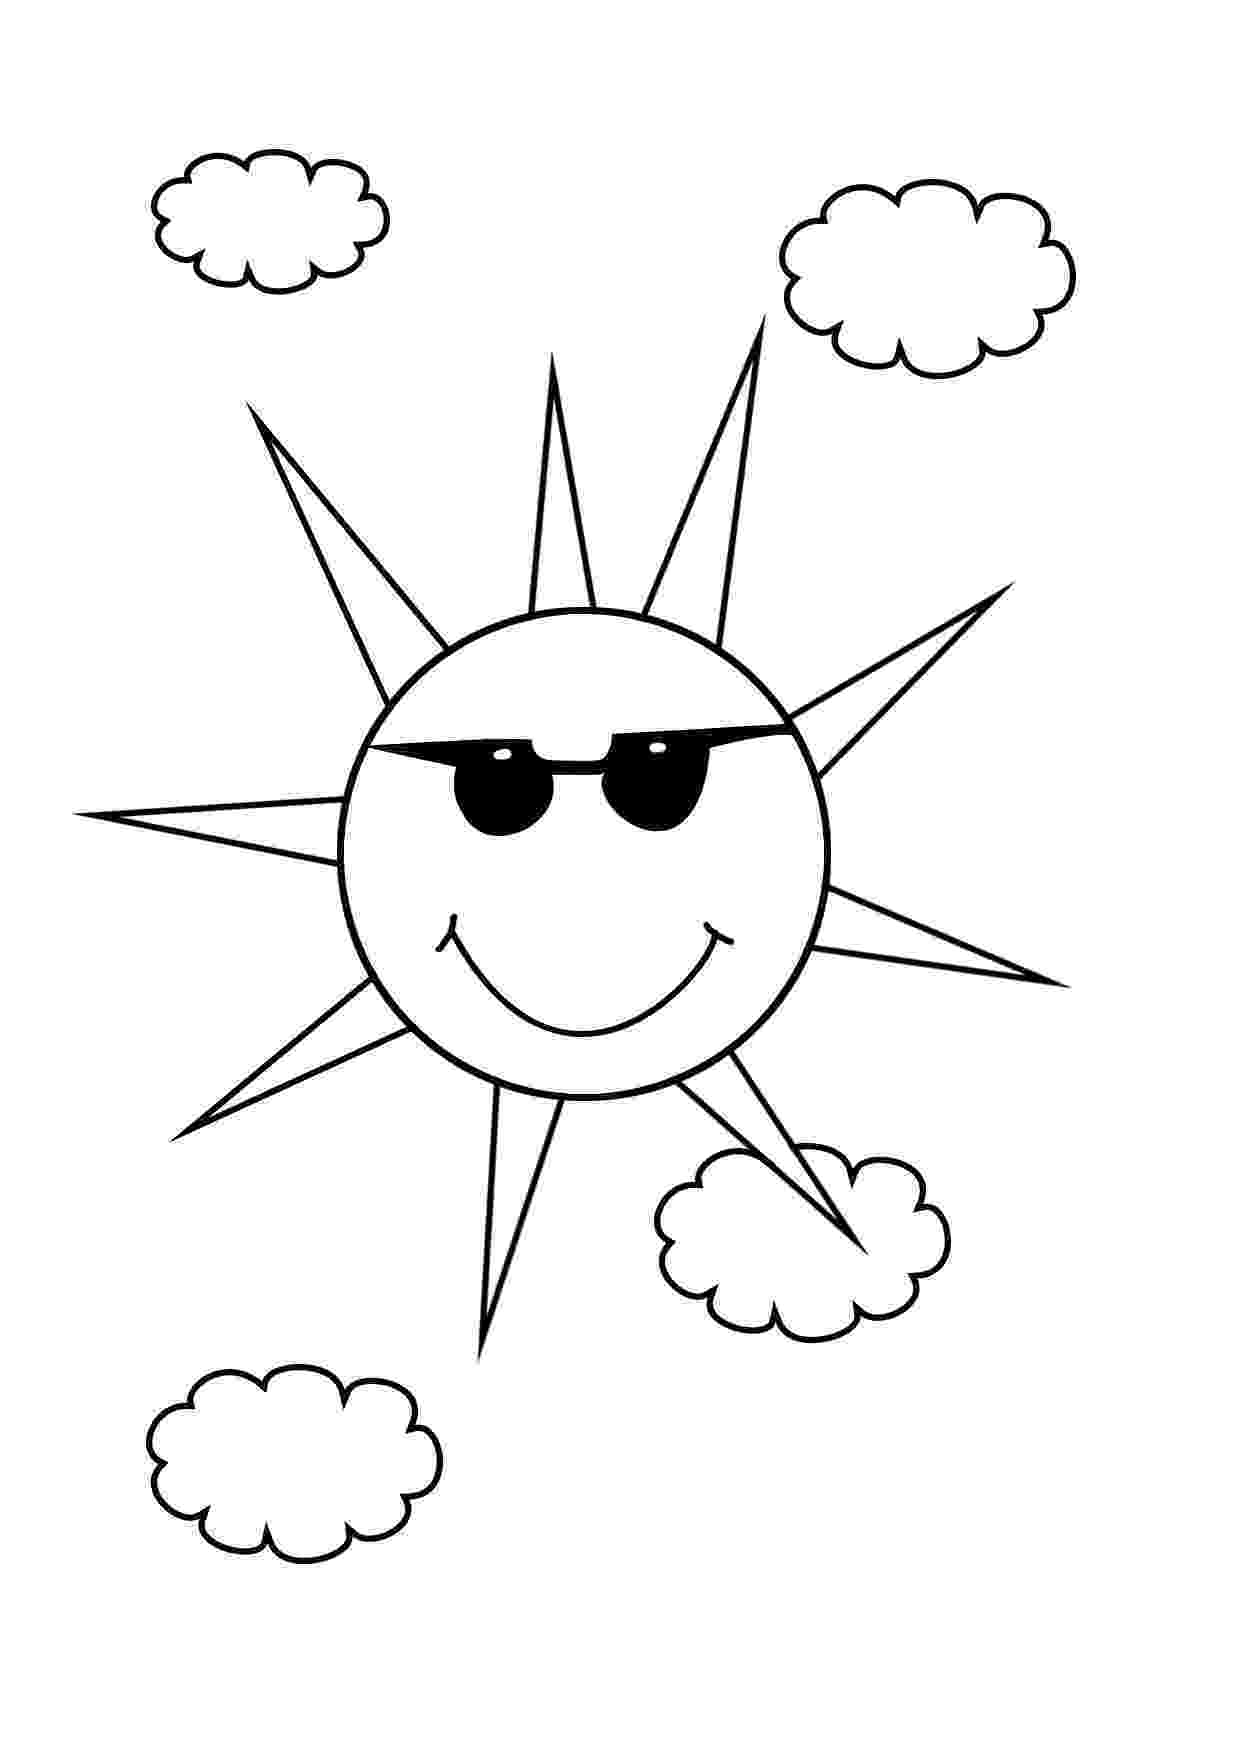 sun coloring pages sun coloring pages download and print sun coloring pages coloring sun pages